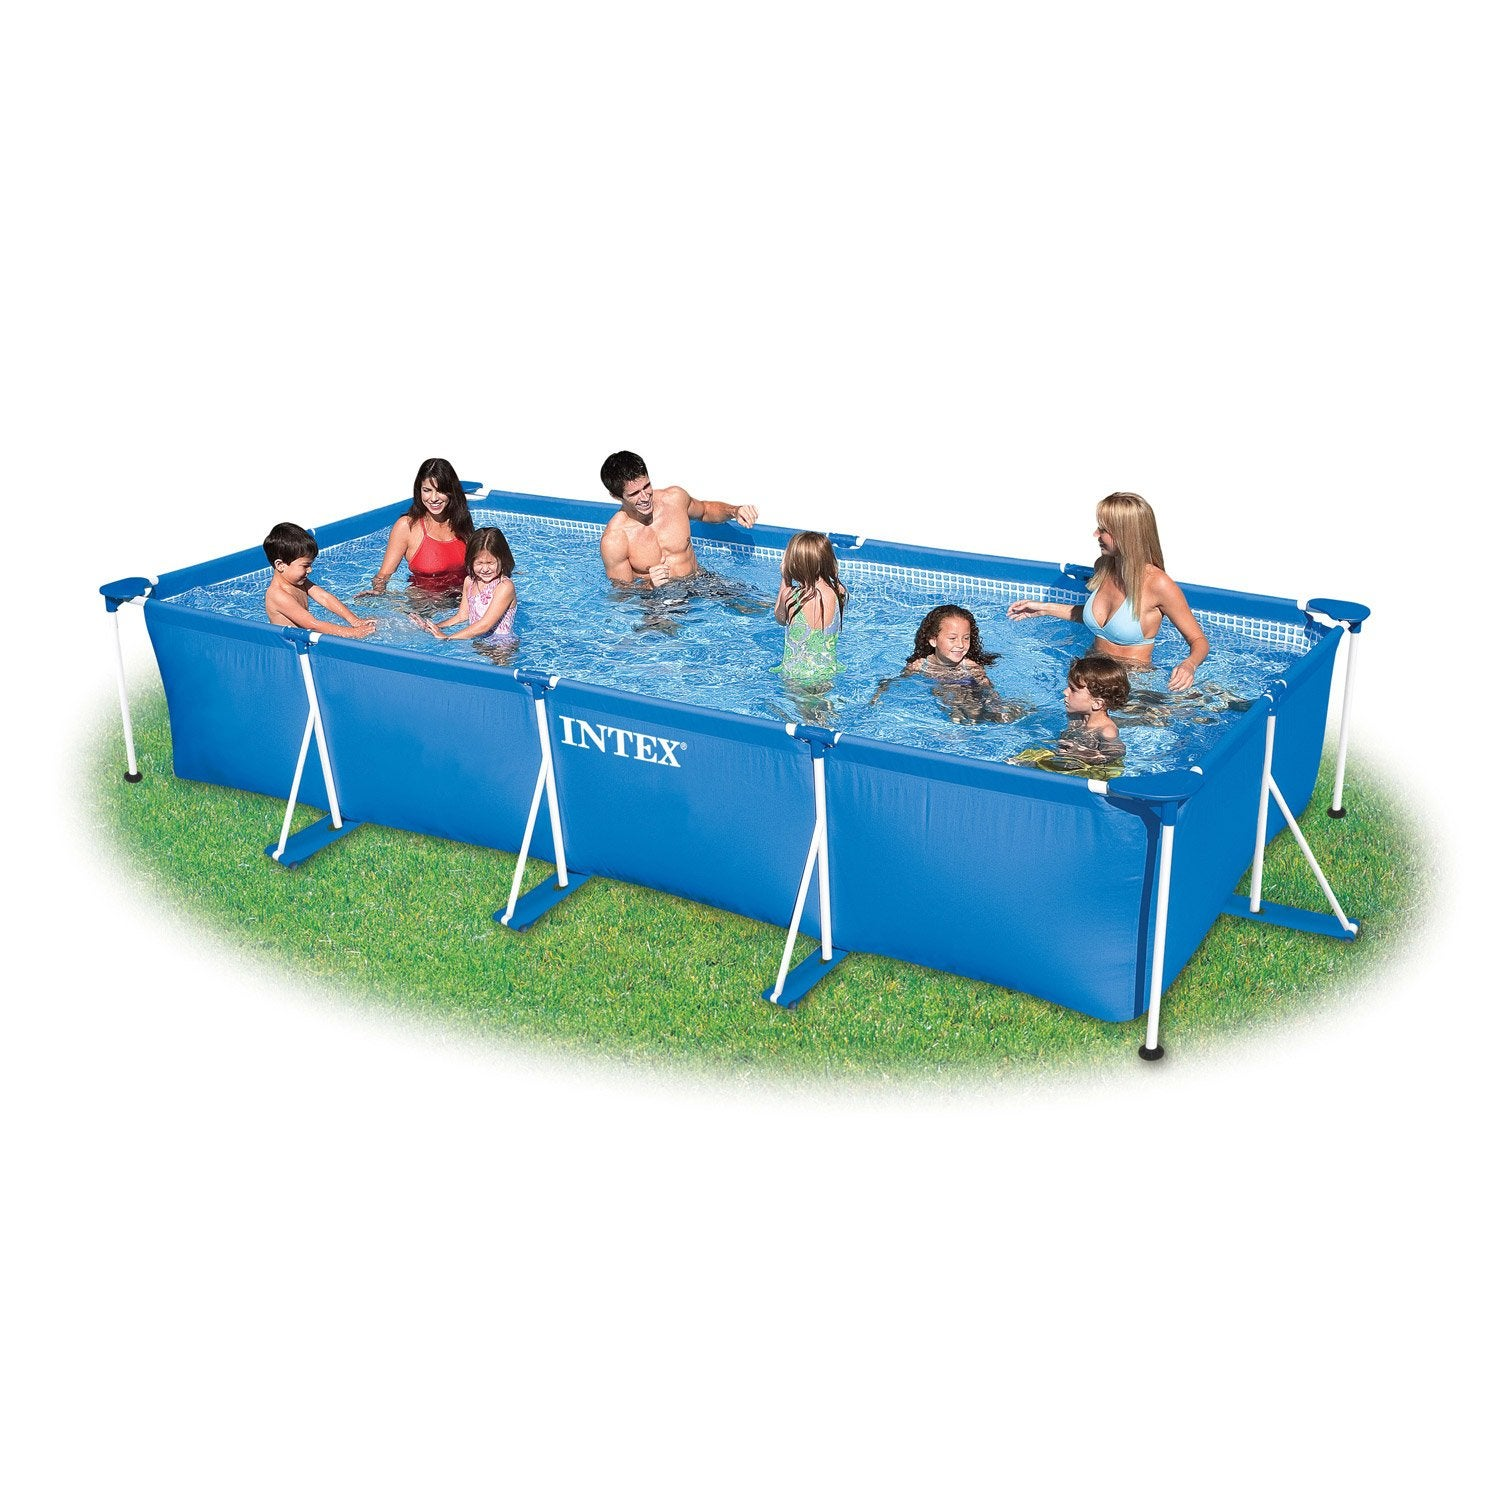 Piscine hors sol autoportante tubulaire intex l x l for Solde piscine tubulaire intex